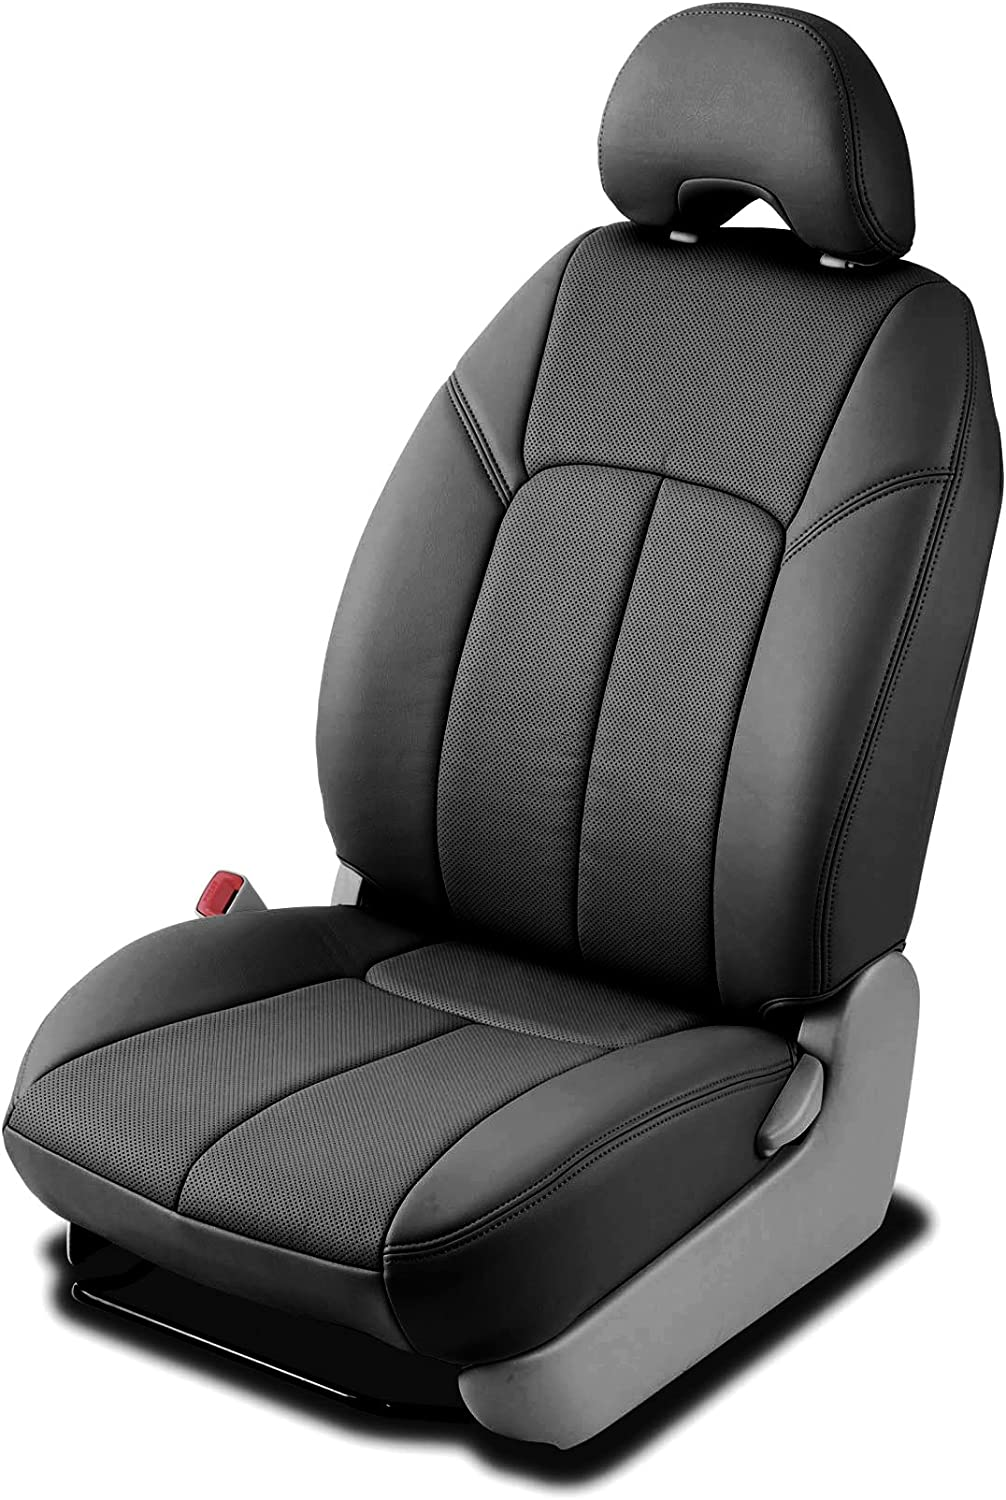 Clazzio 255911blk Black Leather Front Row Seat Cover for Toyota Highlander